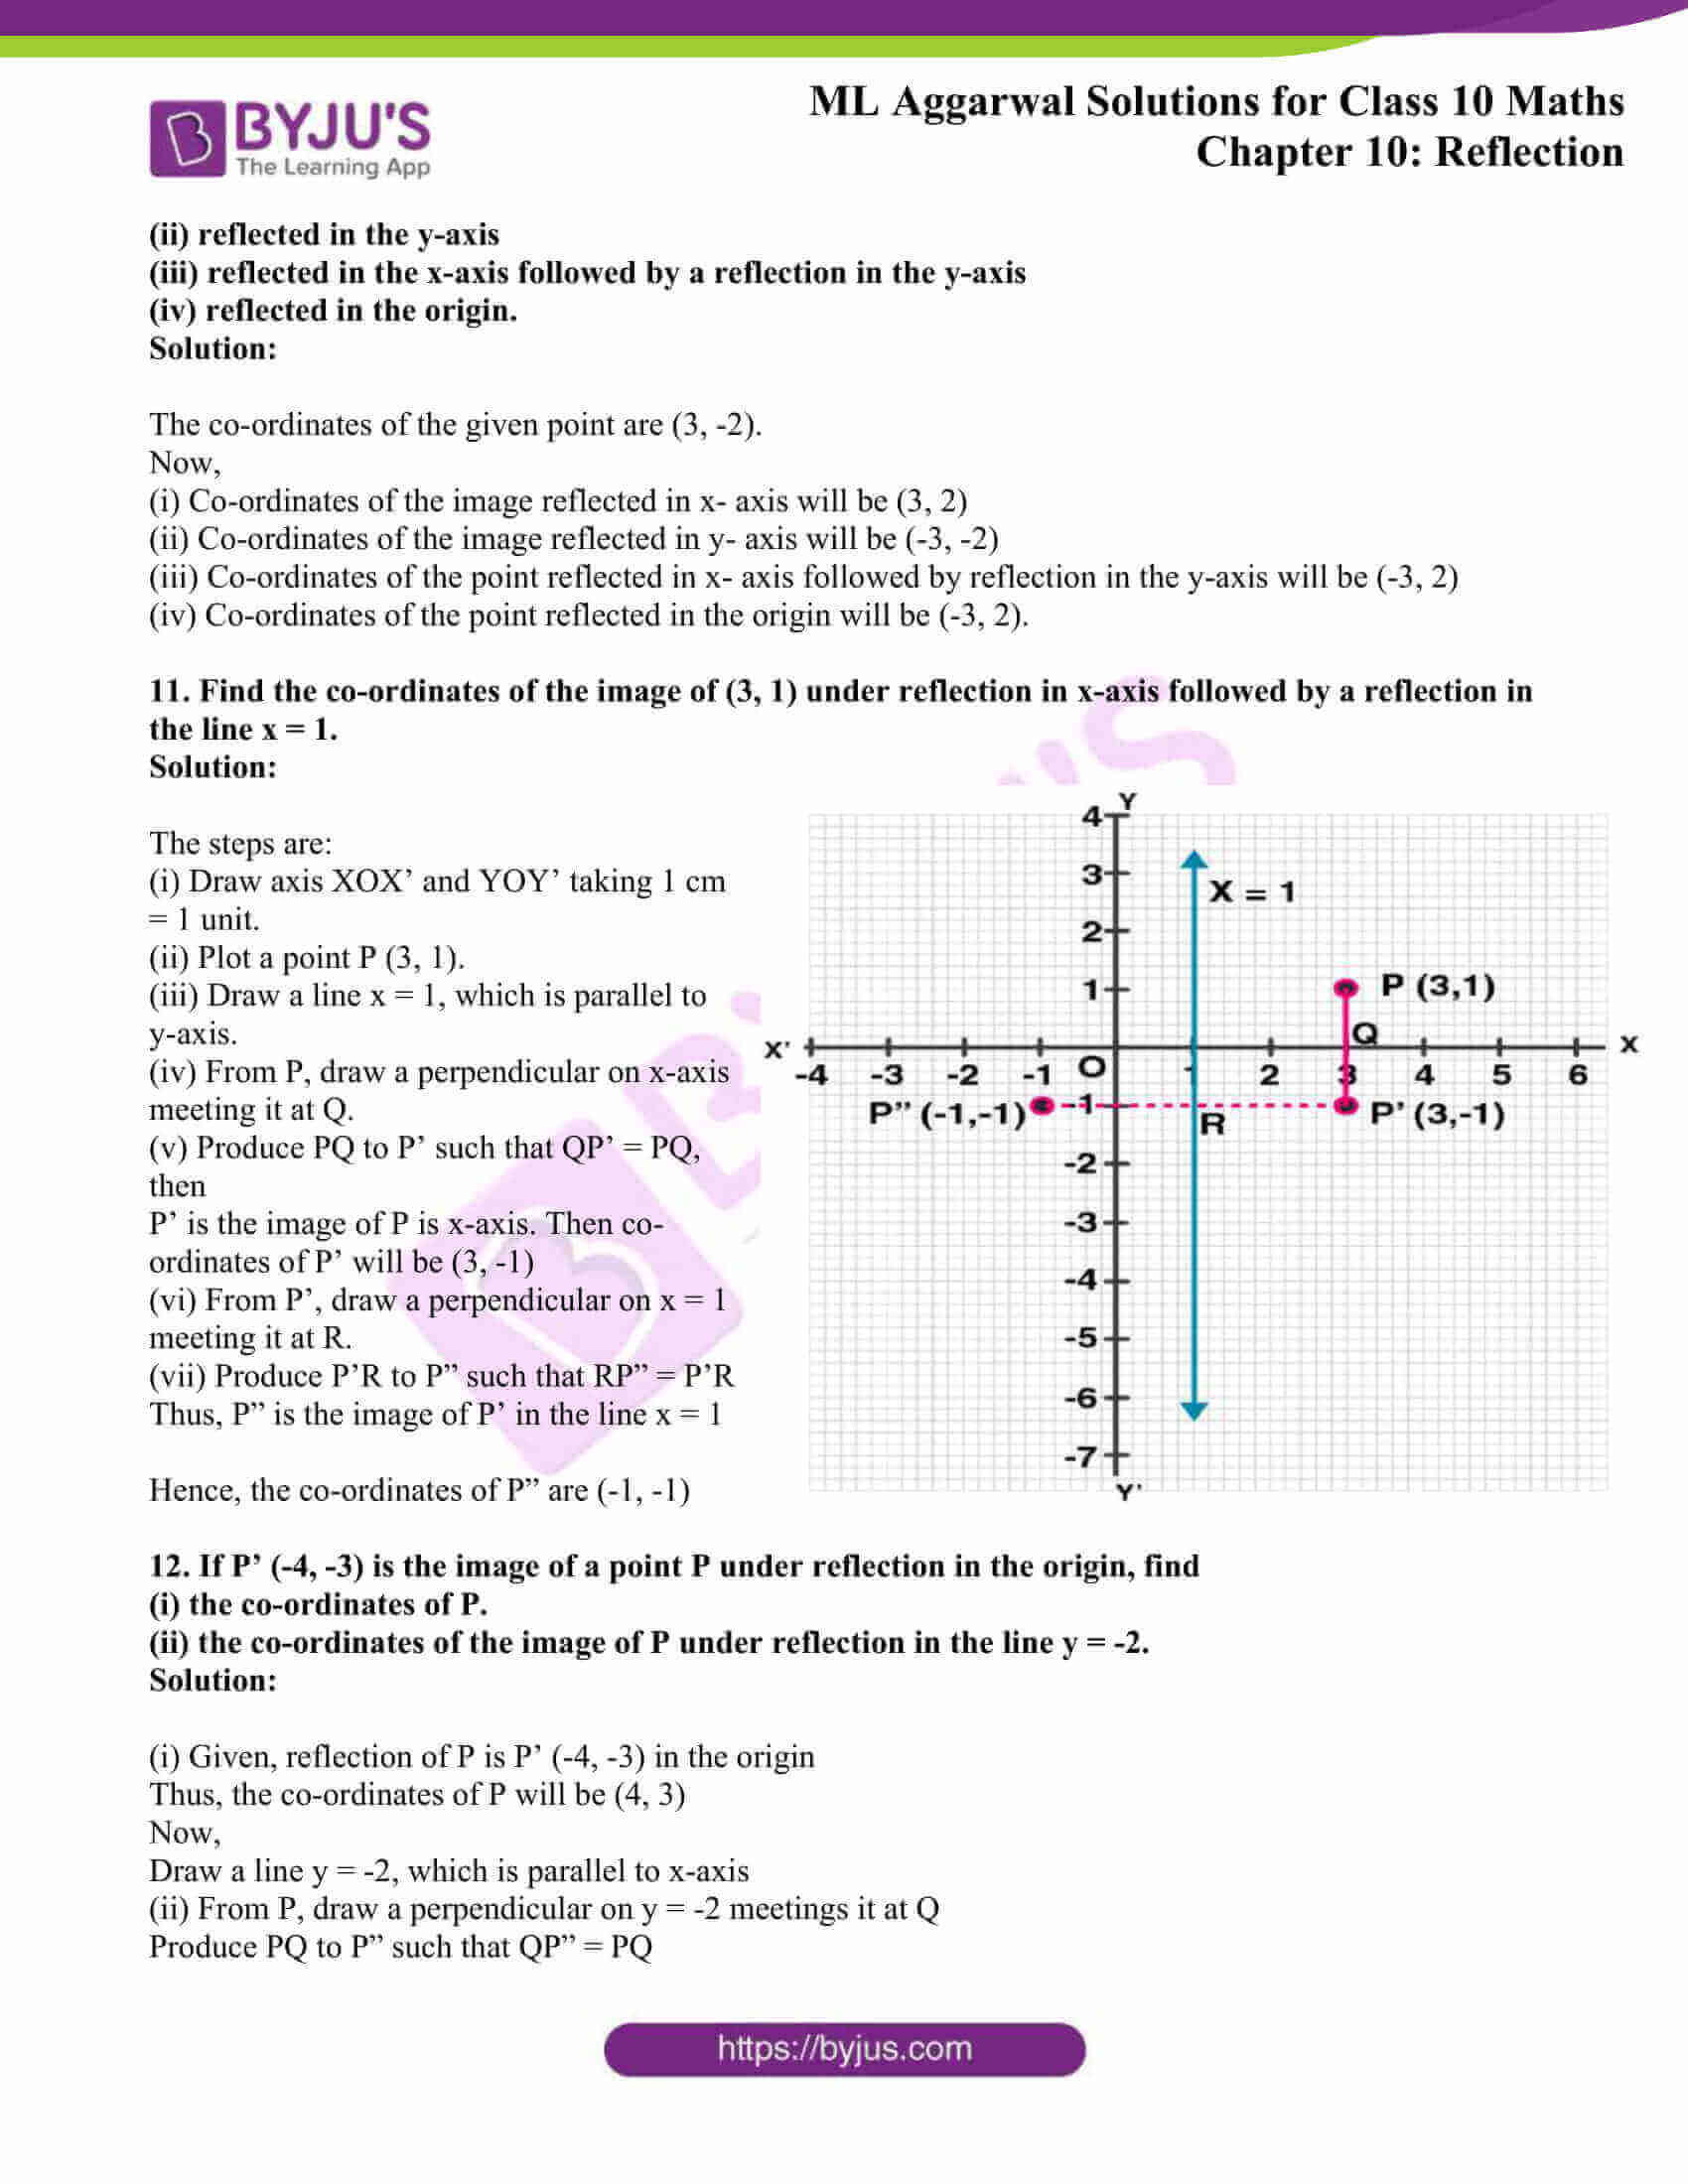 ml aggarwal solutions class 10 maths chapter 10 06